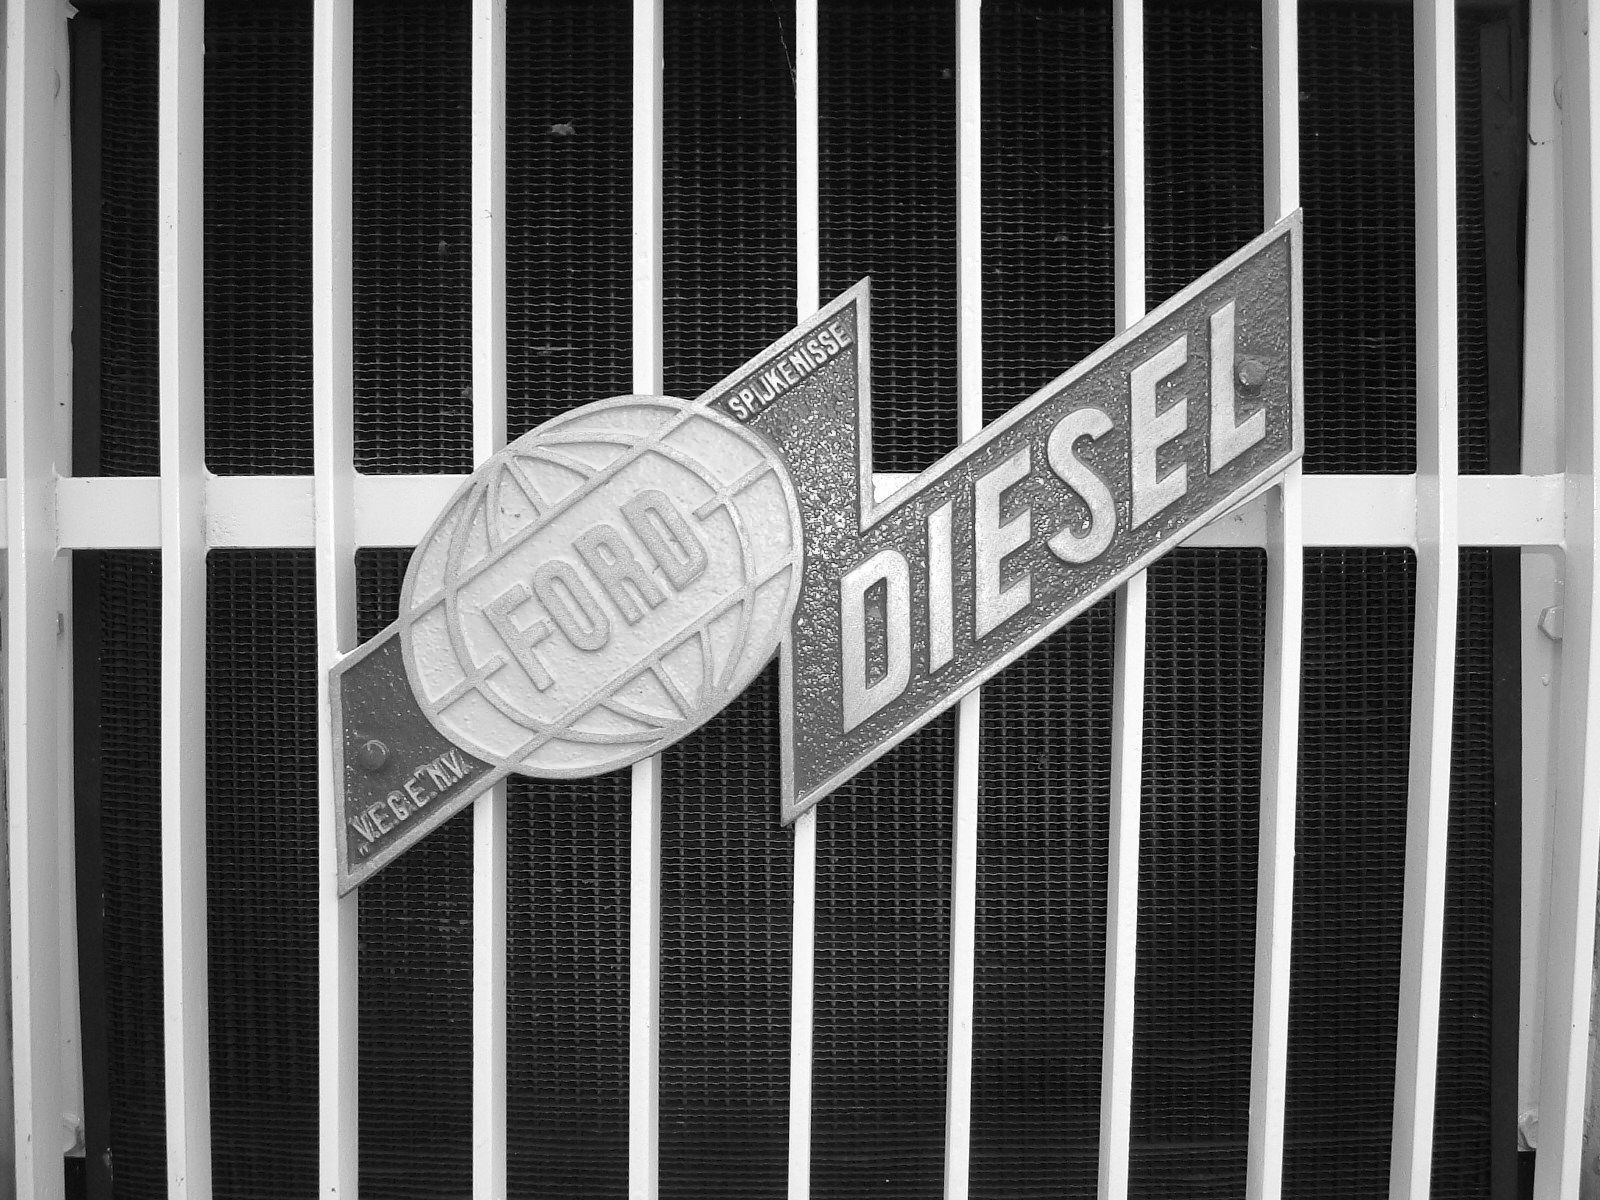 GMC with Ford diesel logo